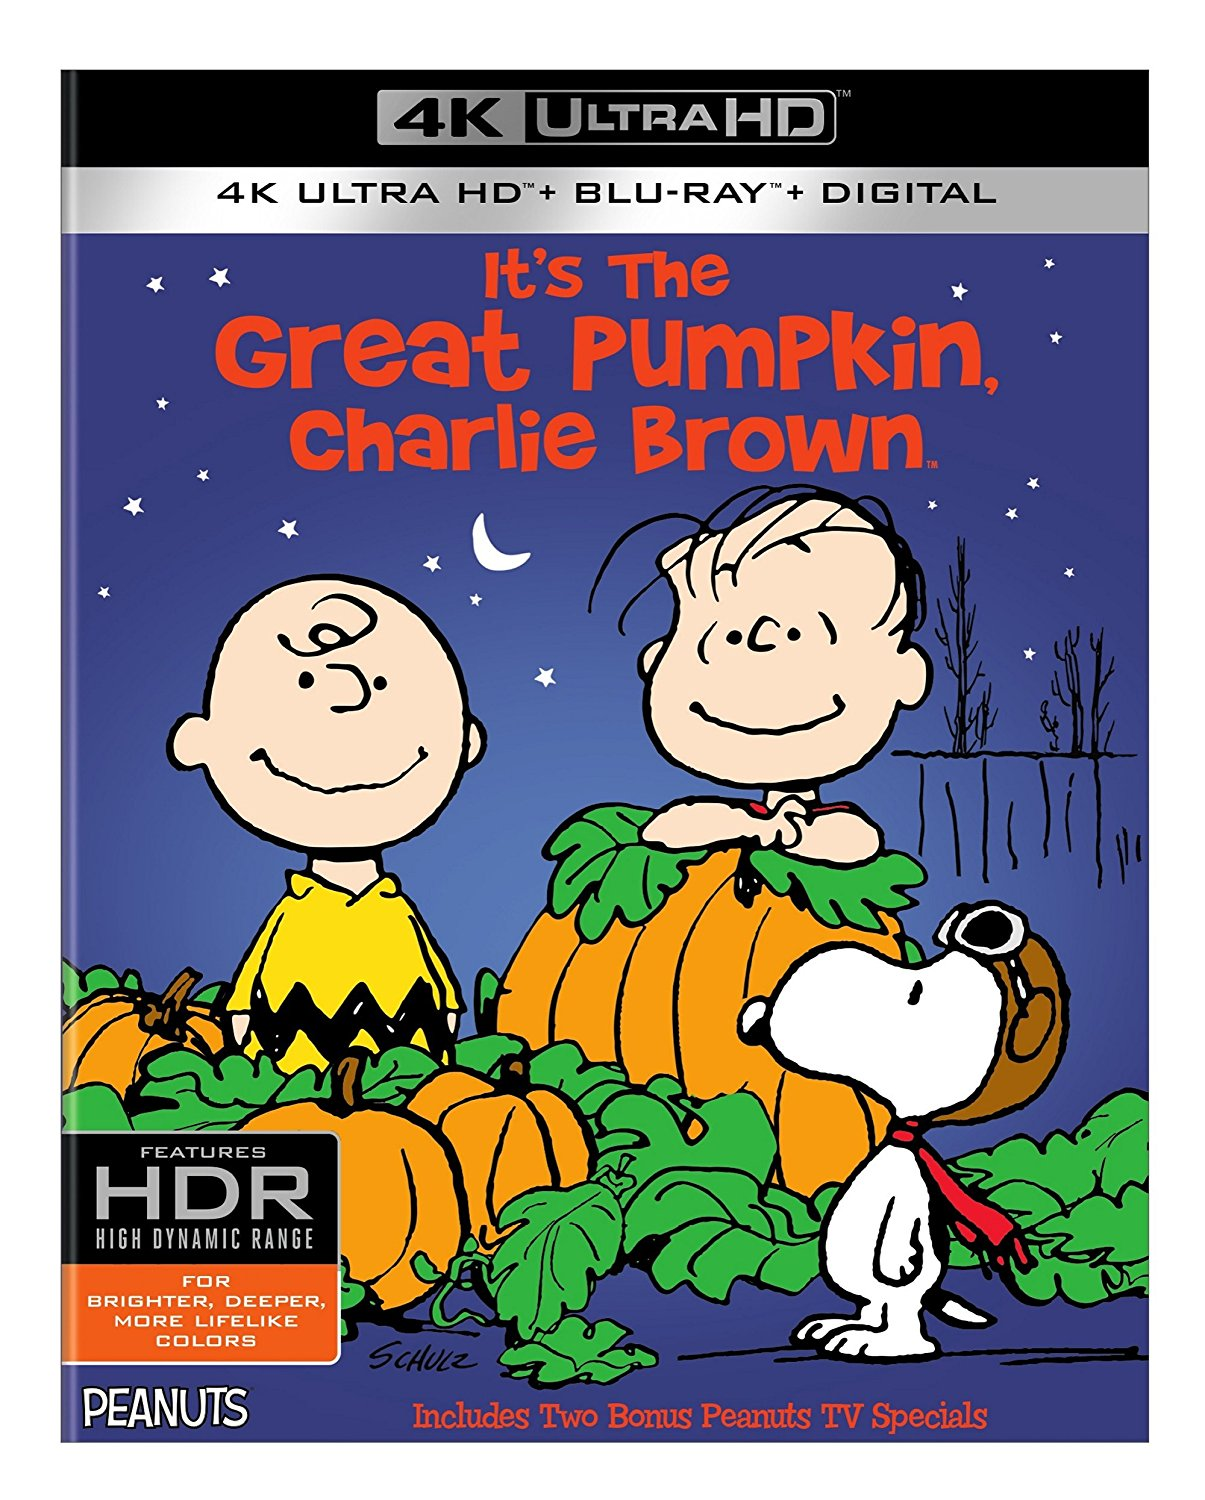 It's The Great Pumpkin Charlie Brown Quotes Gorgeous Its The Great Pumpkin Charlie Brown 4K  Daily Dead